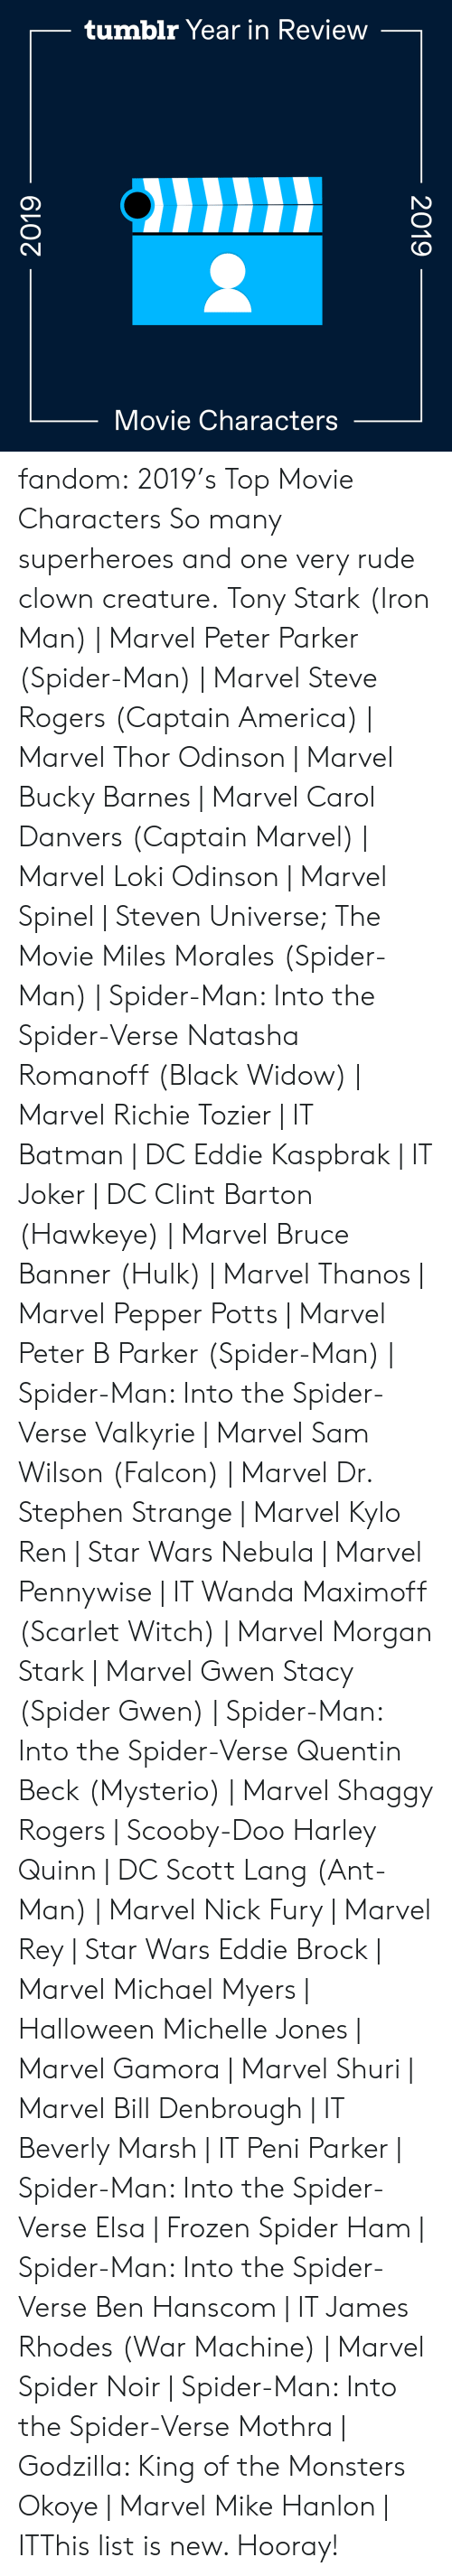 Halloween: tumblr Year in Review  Movie Characters  2019  2019 fandom:  2019's Top Movie Characters  So many superheroes and one very rude clown creature.  Tony Stark (Iron Man) | Marvel  Peter Parker (Spider-Man) | Marvel  Steve Rogers (Captain America) | Marvel  Thor Odinson | Marvel  Bucky Barnes | Marvel  Carol Danvers (Captain Marvel) | Marvel  Loki Odinson | Marvel  Spinel | Steven Universe; The Movie  Miles Morales (Spider-Man) | Spider-Man: Into the Spider-Verse  Natasha Romanoff (Black Widow) | Marvel  Richie Tozier | IT  Batman | DC  Eddie Kaspbrak | IT  Joker | DC  Clint Barton (Hawkeye) | Marvel  Bruce Banner (Hulk) | Marvel  Thanos | Marvel  Pepper Potts | Marvel  Peter B Parker (Spider-Man) | Spider-Man: Into the Spider-Verse  Valkyrie | Marvel  Sam Wilson (Falcon) | Marvel  Dr. Stephen Strange | Marvel  Kylo Ren | Star Wars  Nebula | Marvel  Pennywise | IT  Wanda Maximoff (Scarlet Witch) | Marvel  Morgan Stark | Marvel  Gwen Stacy (Spider Gwen) | Spider-Man: Into the Spider-Verse  Quentin Beck (Mysterio) | Marvel  Shaggy Rogers | Scooby-Doo  Harley Quinn | DC  Scott Lang (Ant-Man) | Marvel  Nick Fury | Marvel  Rey | Star Wars  Eddie Brock | Marvel  Michael Myers | Halloween  Michelle Jones | Marvel  Gamora | Marvel  Shuri | Marvel  Bill Denbrough | IT  Beverly Marsh | IT  Peni Parker | Spider-Man: Into the Spider-Verse  Elsa | Frozen  Spider Ham | Spider-Man: Into the Spider-Verse  Ben Hanscom | IT  James Rhodes (War Machine) | Marvel  Spider Noir | Spider-Man: Into the Spider-Verse  Mothra | Godzilla: King of the Monsters  Okoye | Marvel Mike Hanlon | ITThis list is new. Hooray!